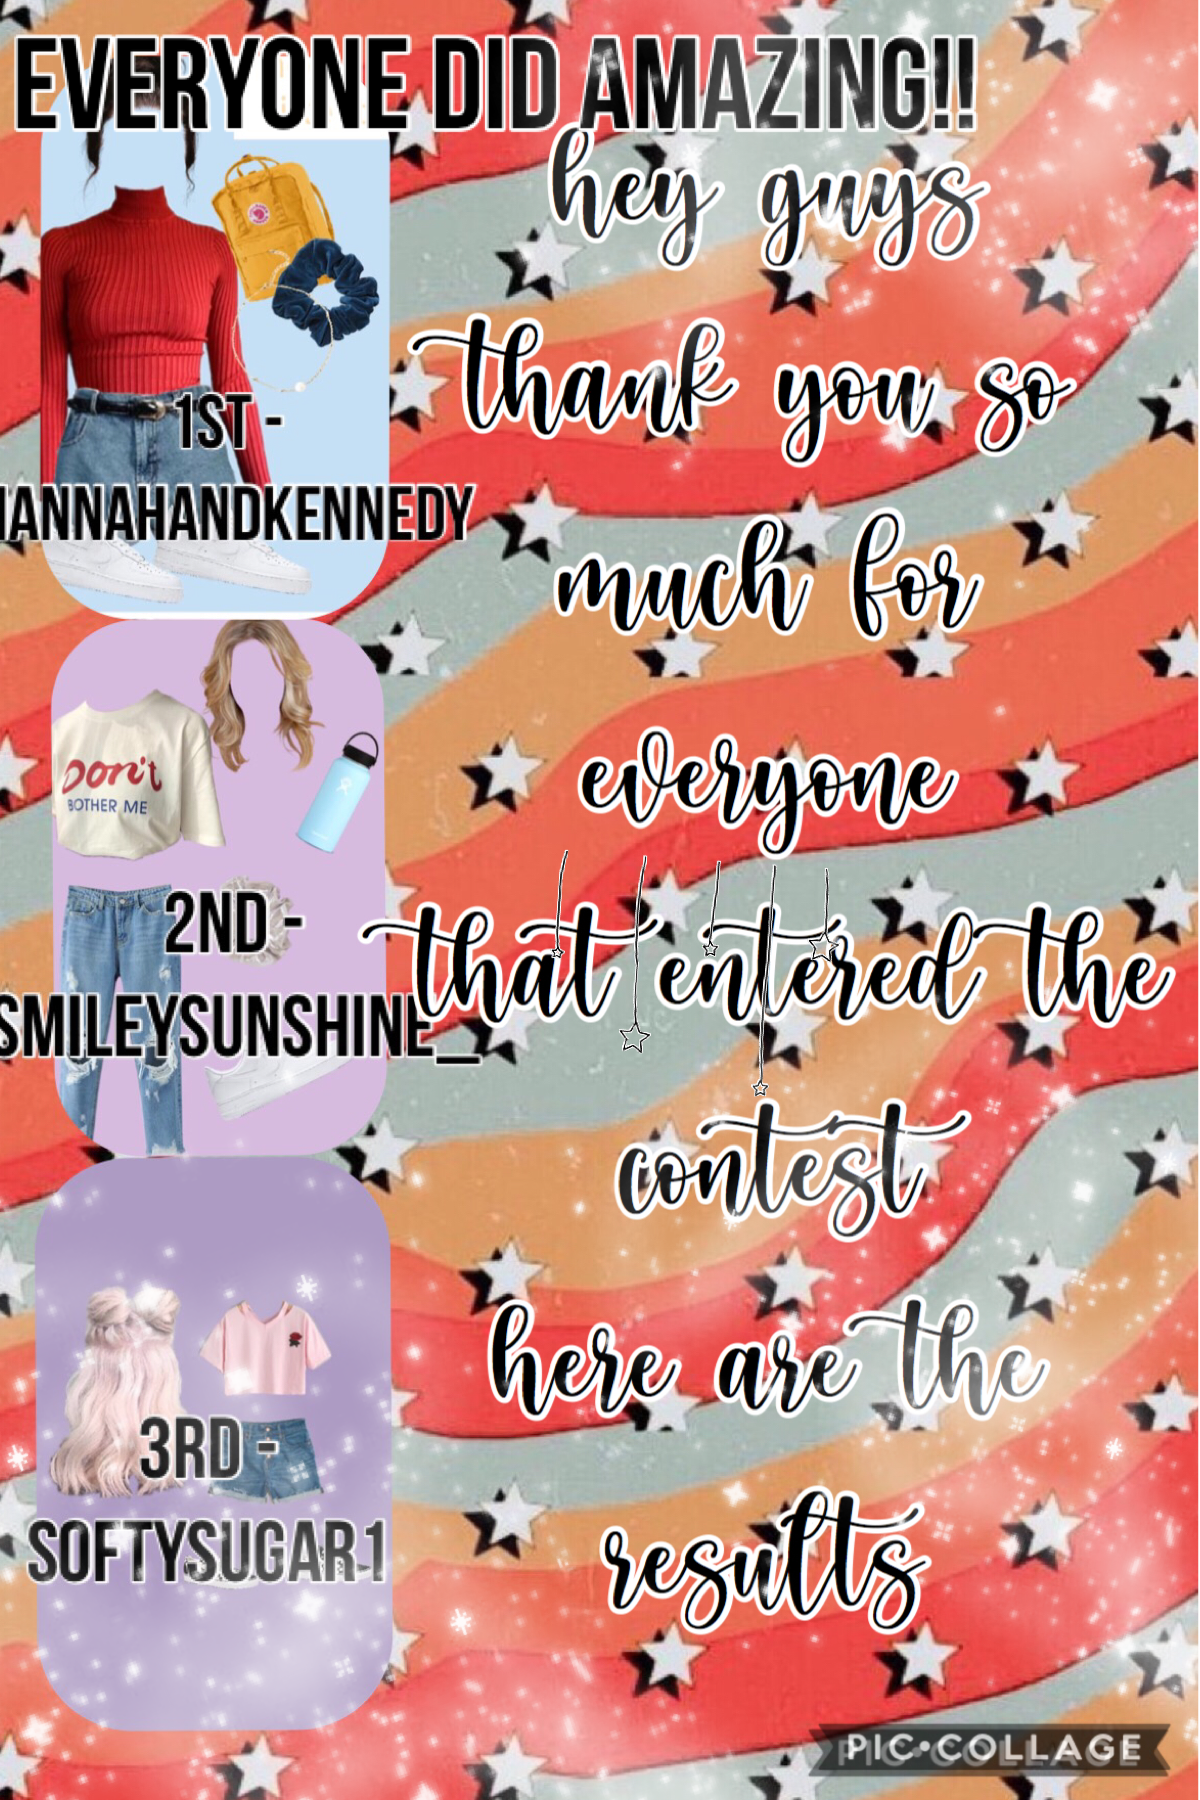 hey!! tysm for everyone who entered the contest! it was very hard choosing. great job!